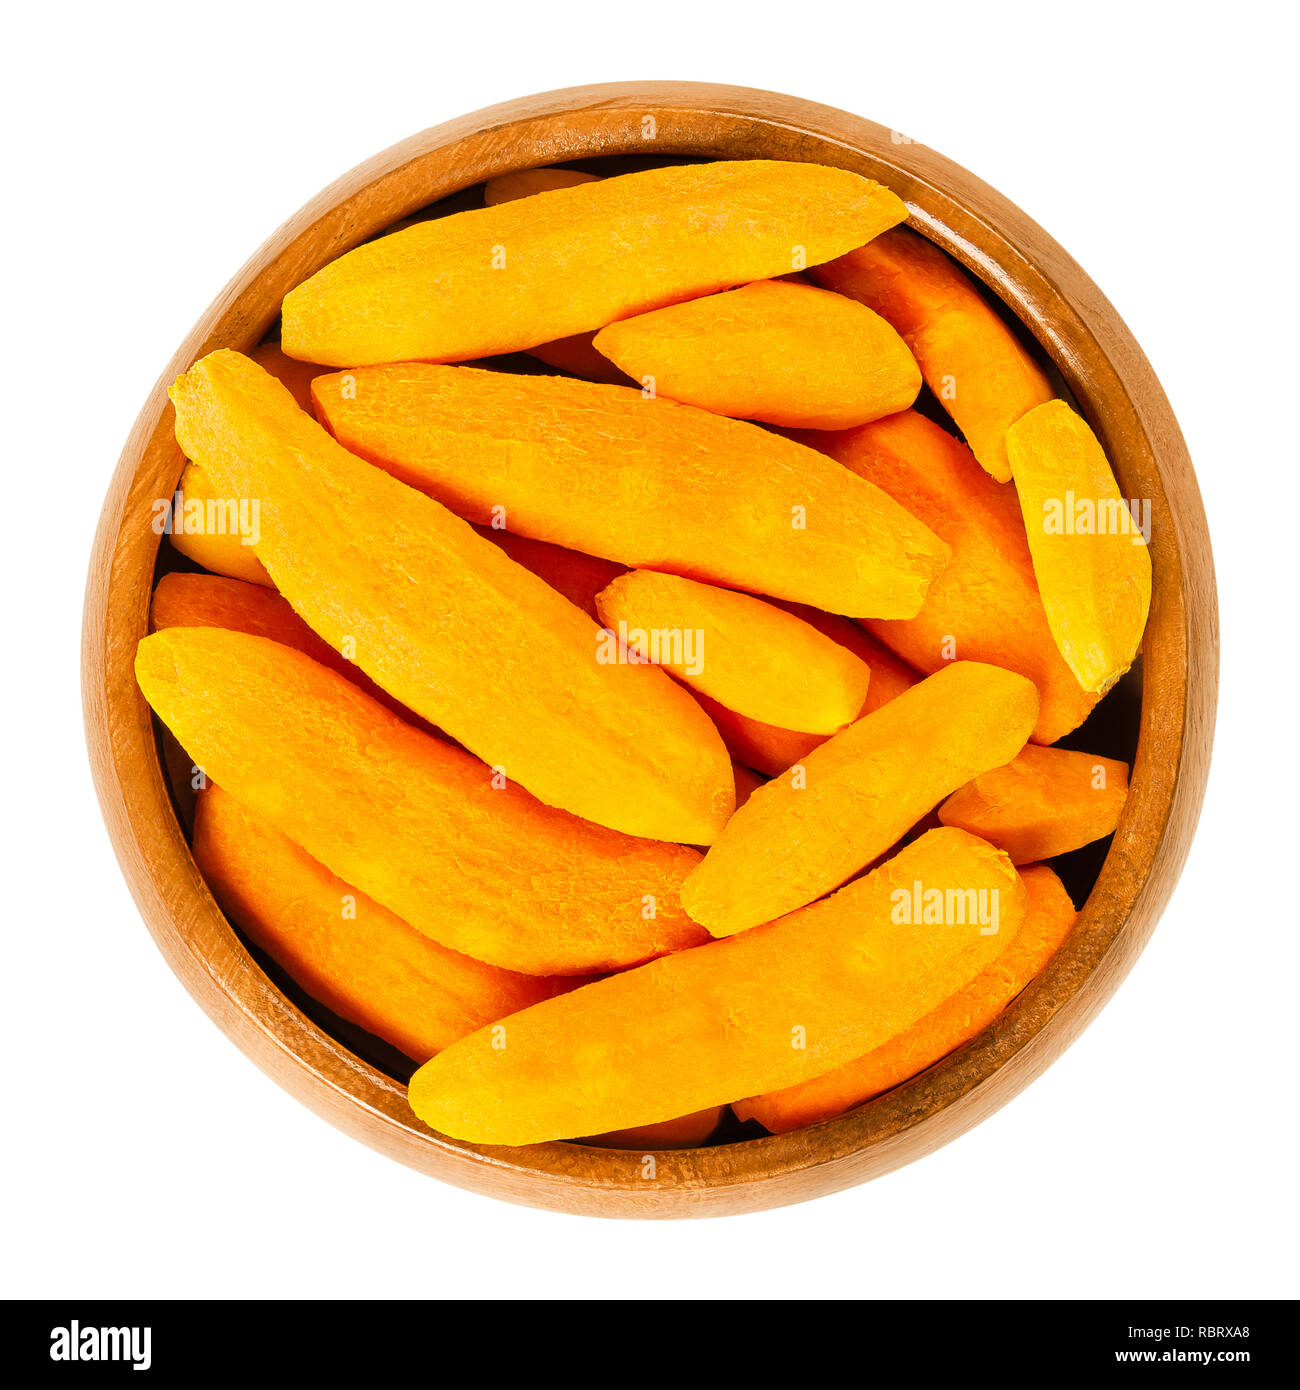 Peeled turmeric rhizomes in wooden bowl. Fresh roots of Curcuma longa, tumeric, with orange color. Spice for curries, coloring mustard and medicine. - Stock Image